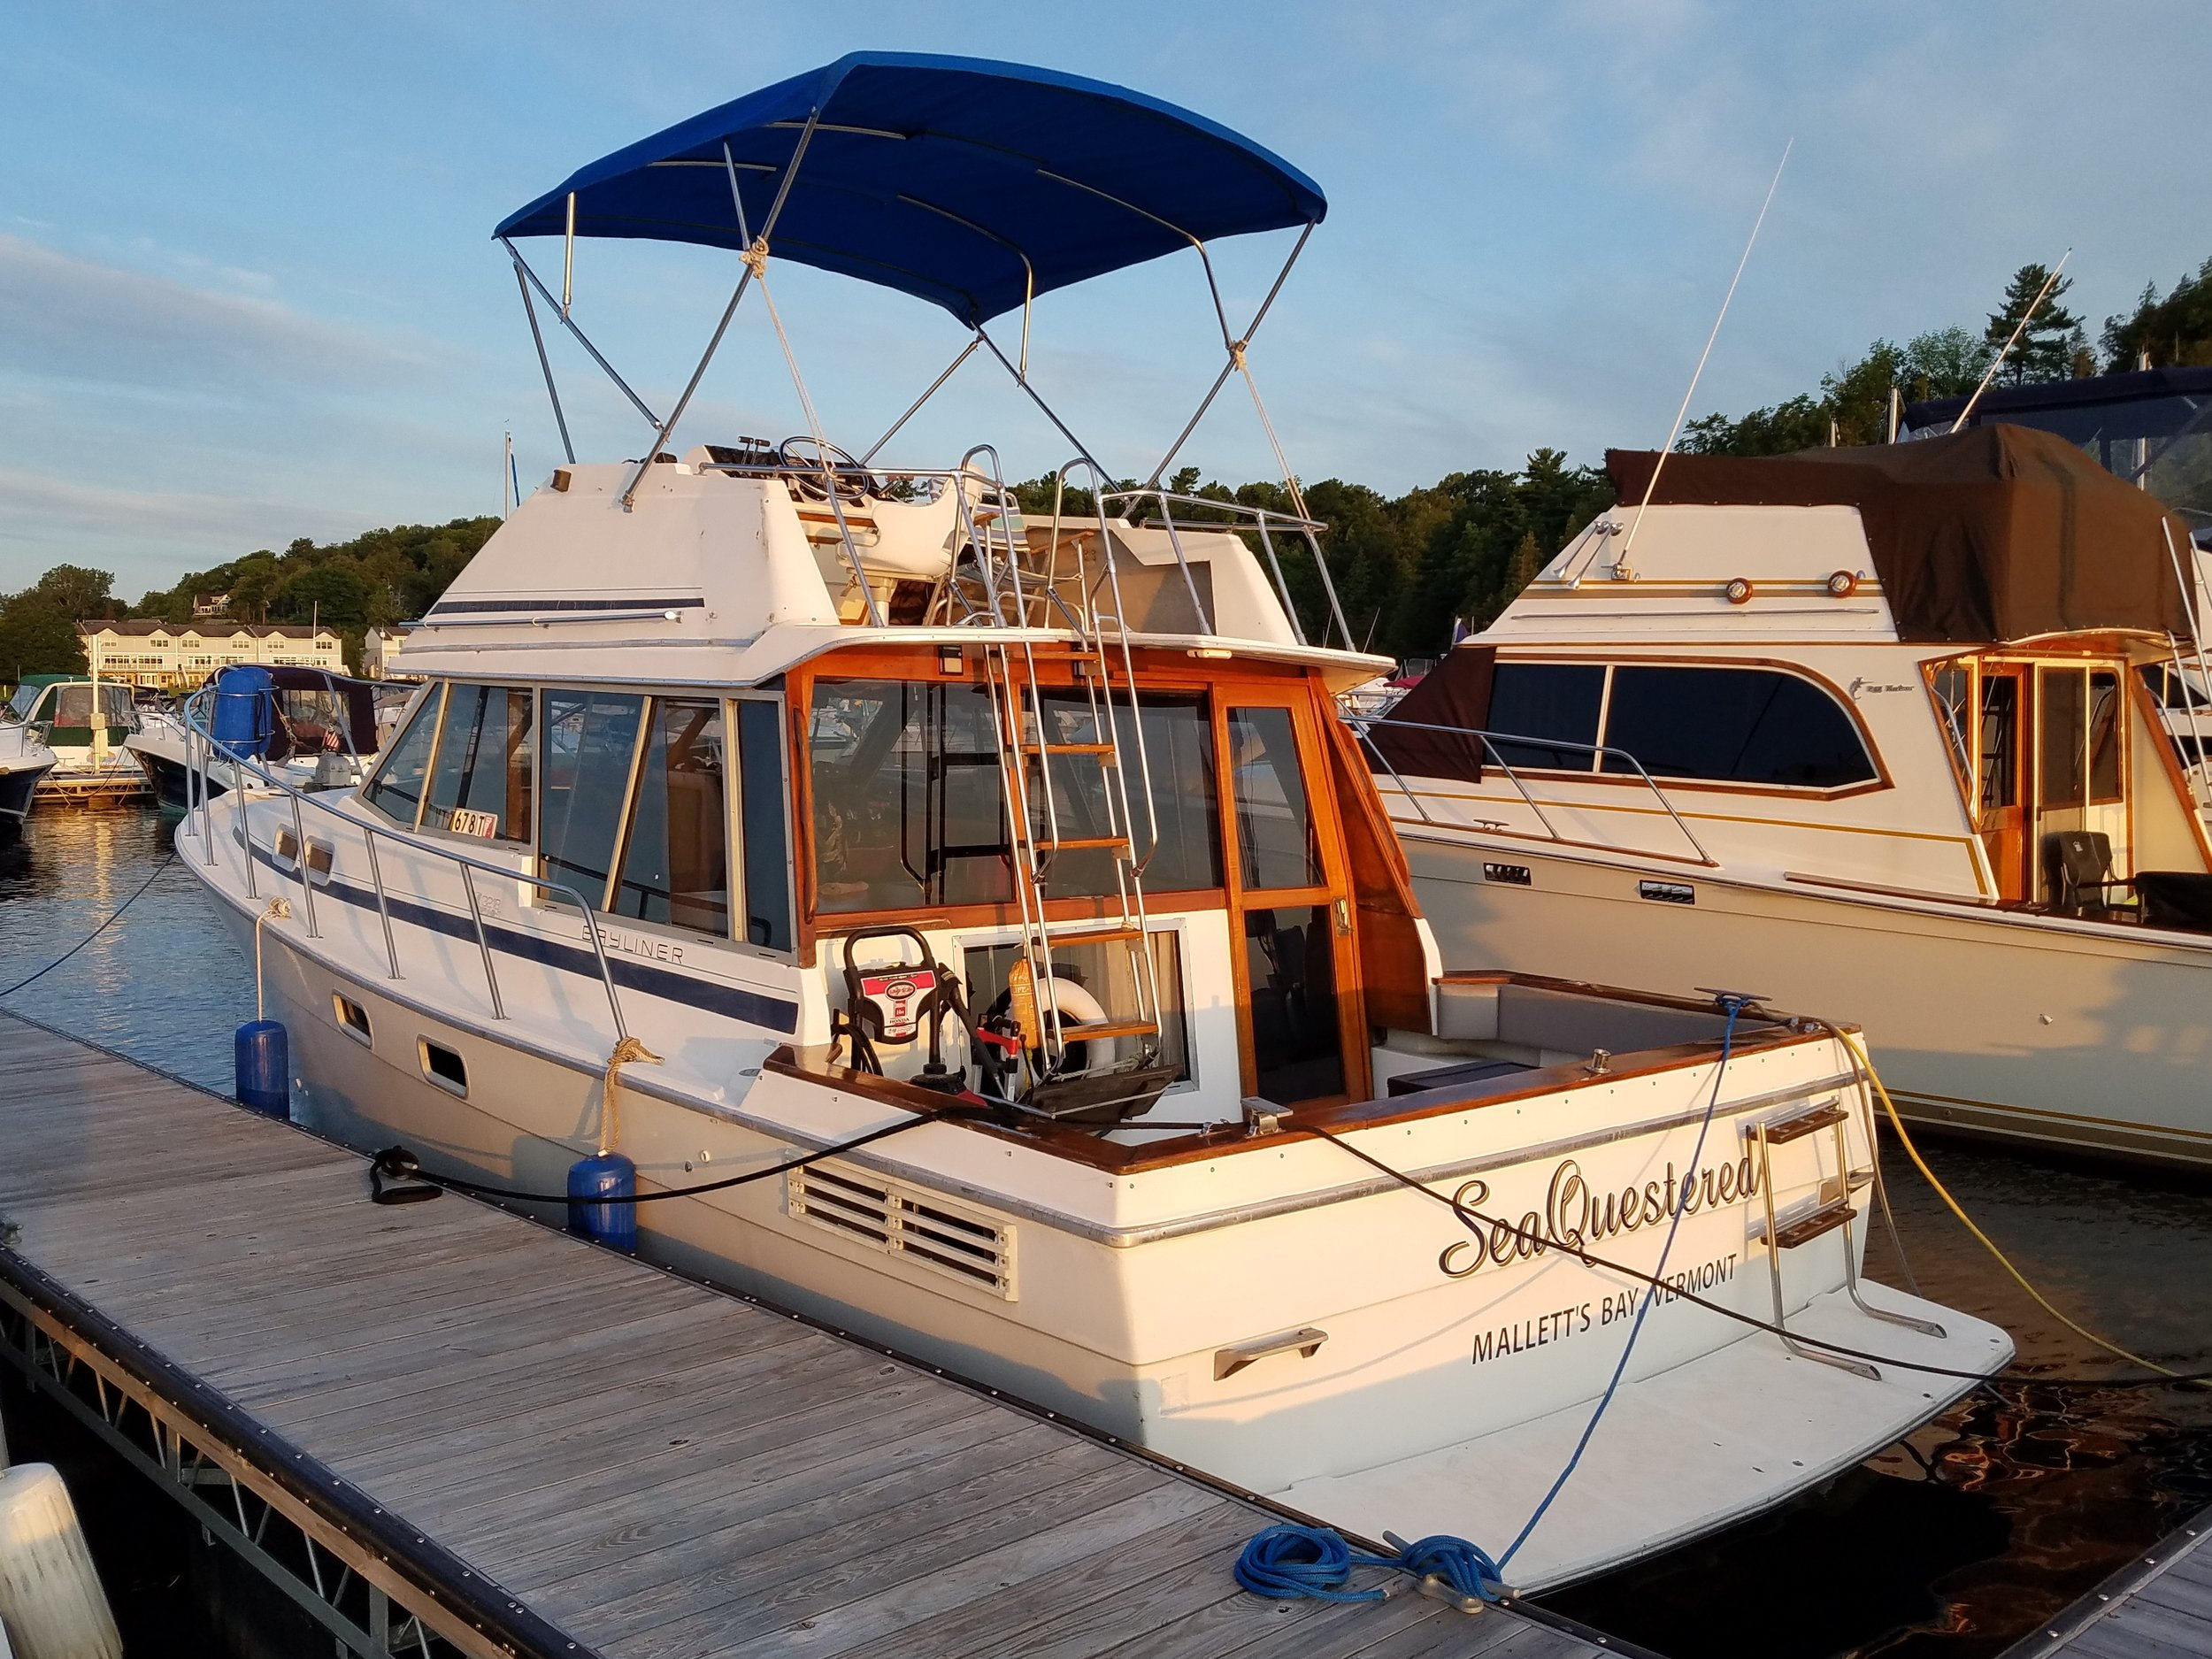 Late Classic - 1988 Bayliner Late classic 3218 Motor Yacht owned by Brian Costello, photo submission.